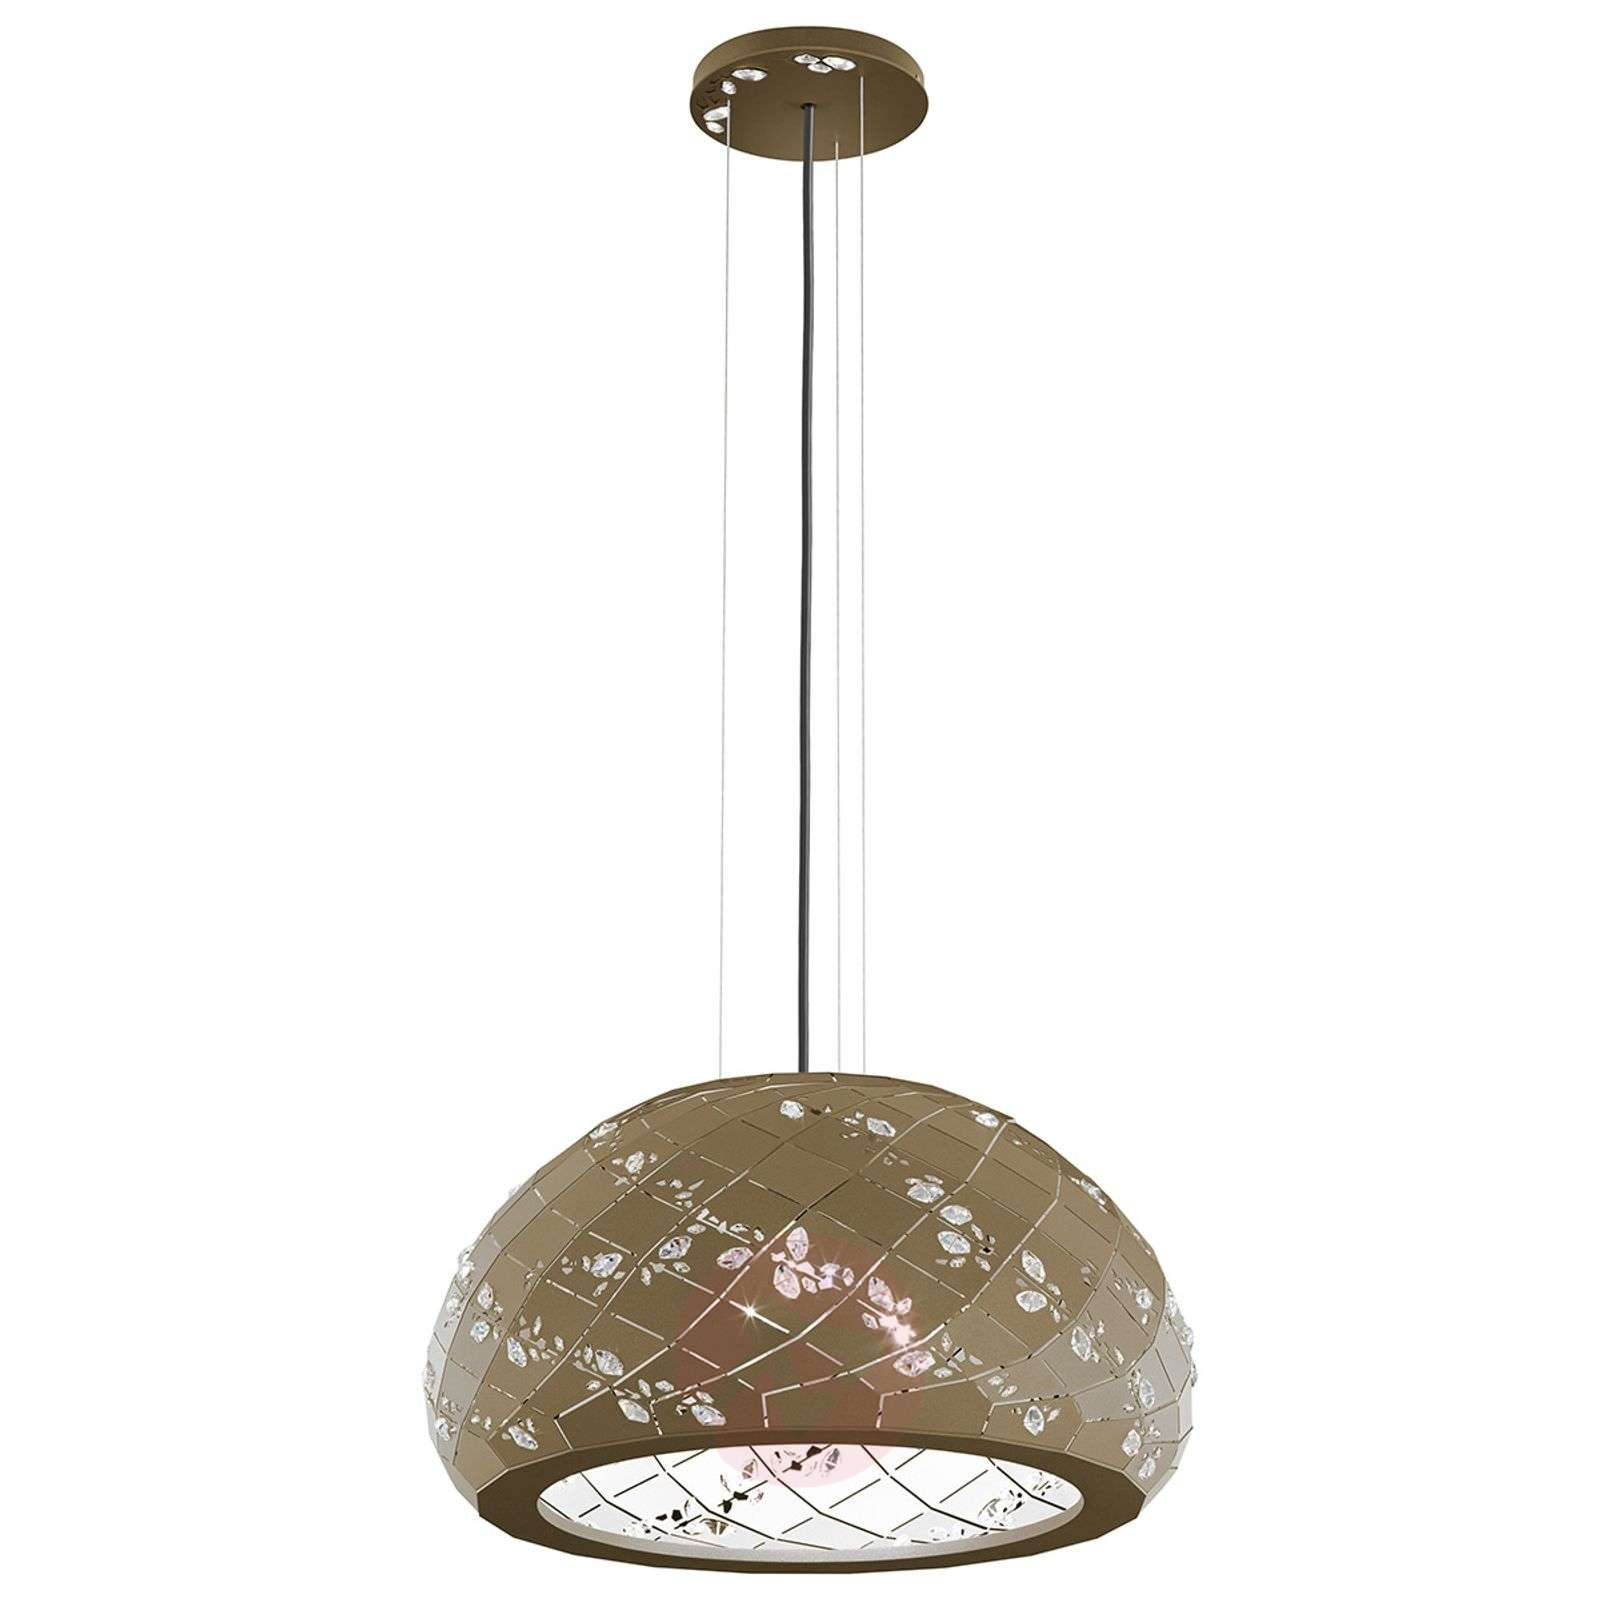 Suspension chatoyante Apta bronze doré, 53 cm-8578017-01